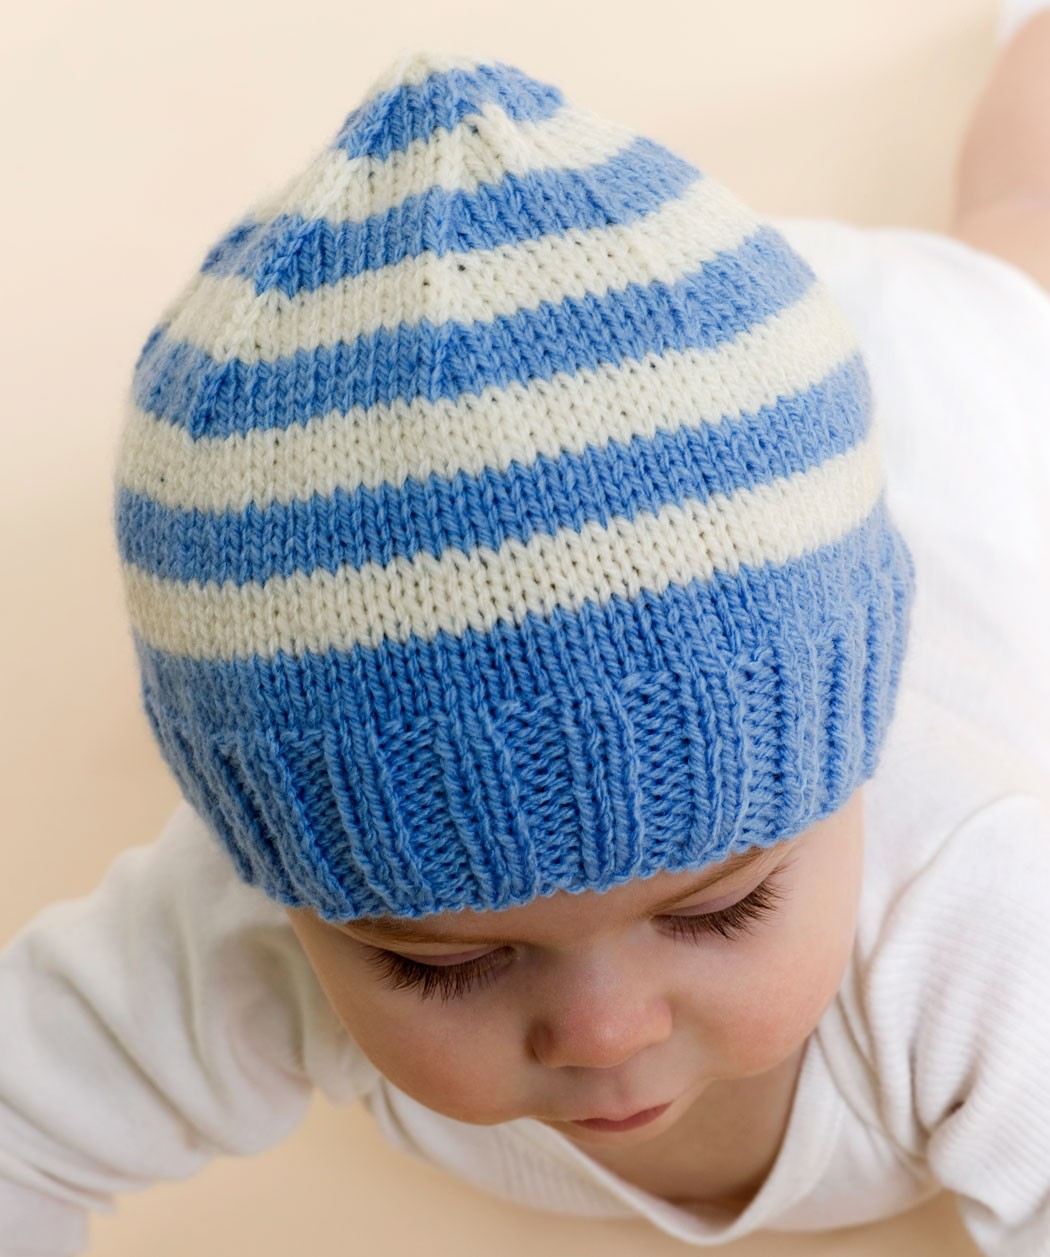 Baby Hats Free Knitting Patterns : Baby Hat Knitting Pattern A Knitting Blog